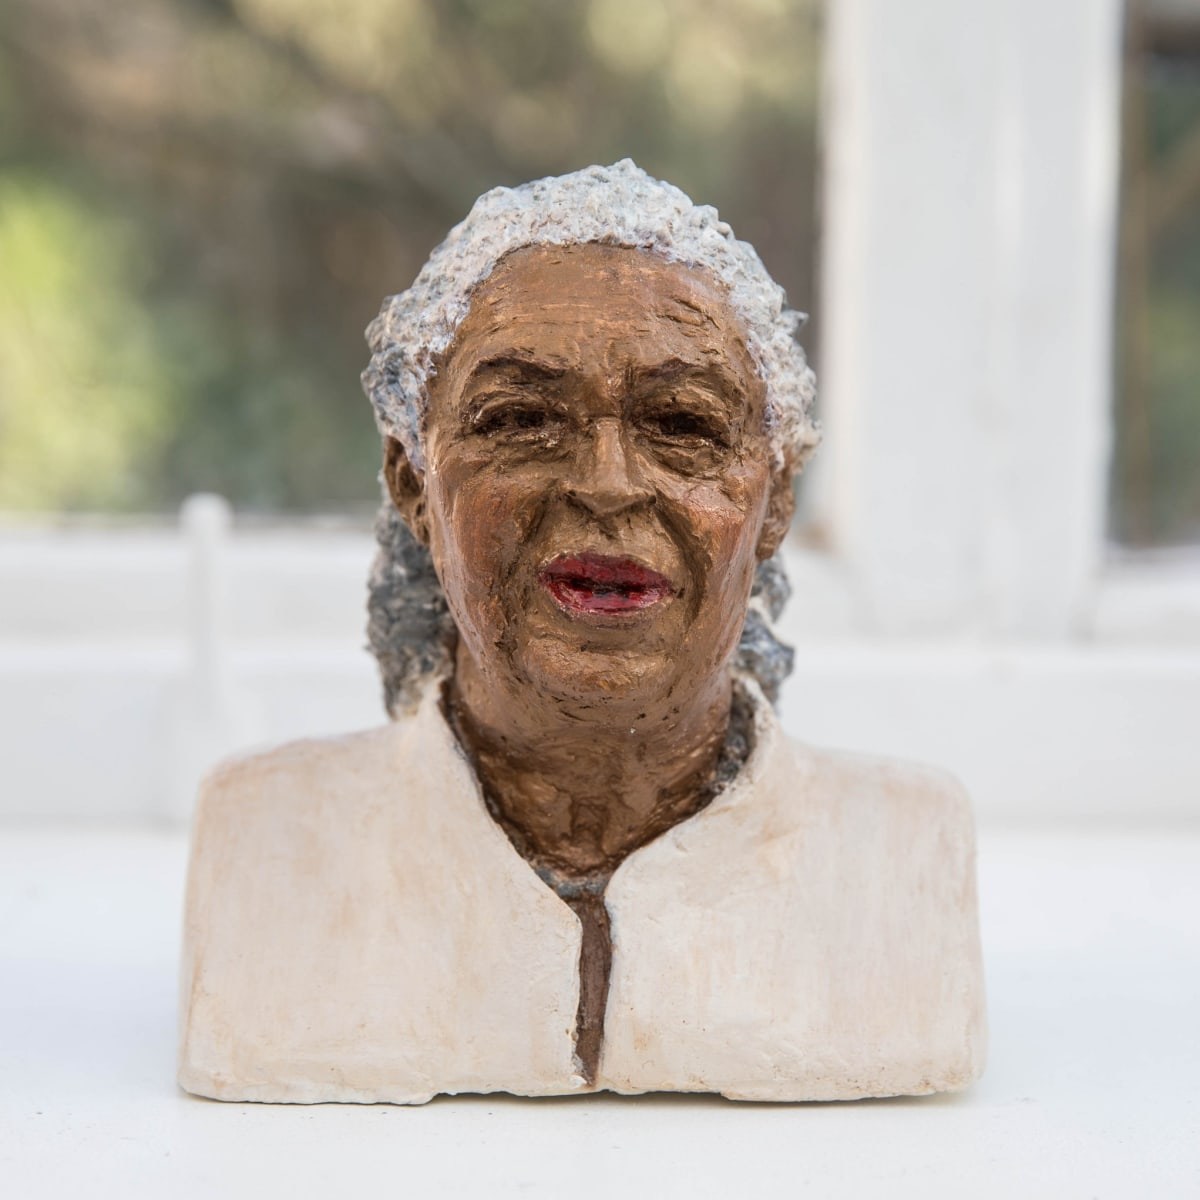 Nicole Farhi Toni Morrison ciment fondu and acrylic; hand-painted bronze casts available to purchase 17 x 15 x 9 cm edition of 7 + 3 APs